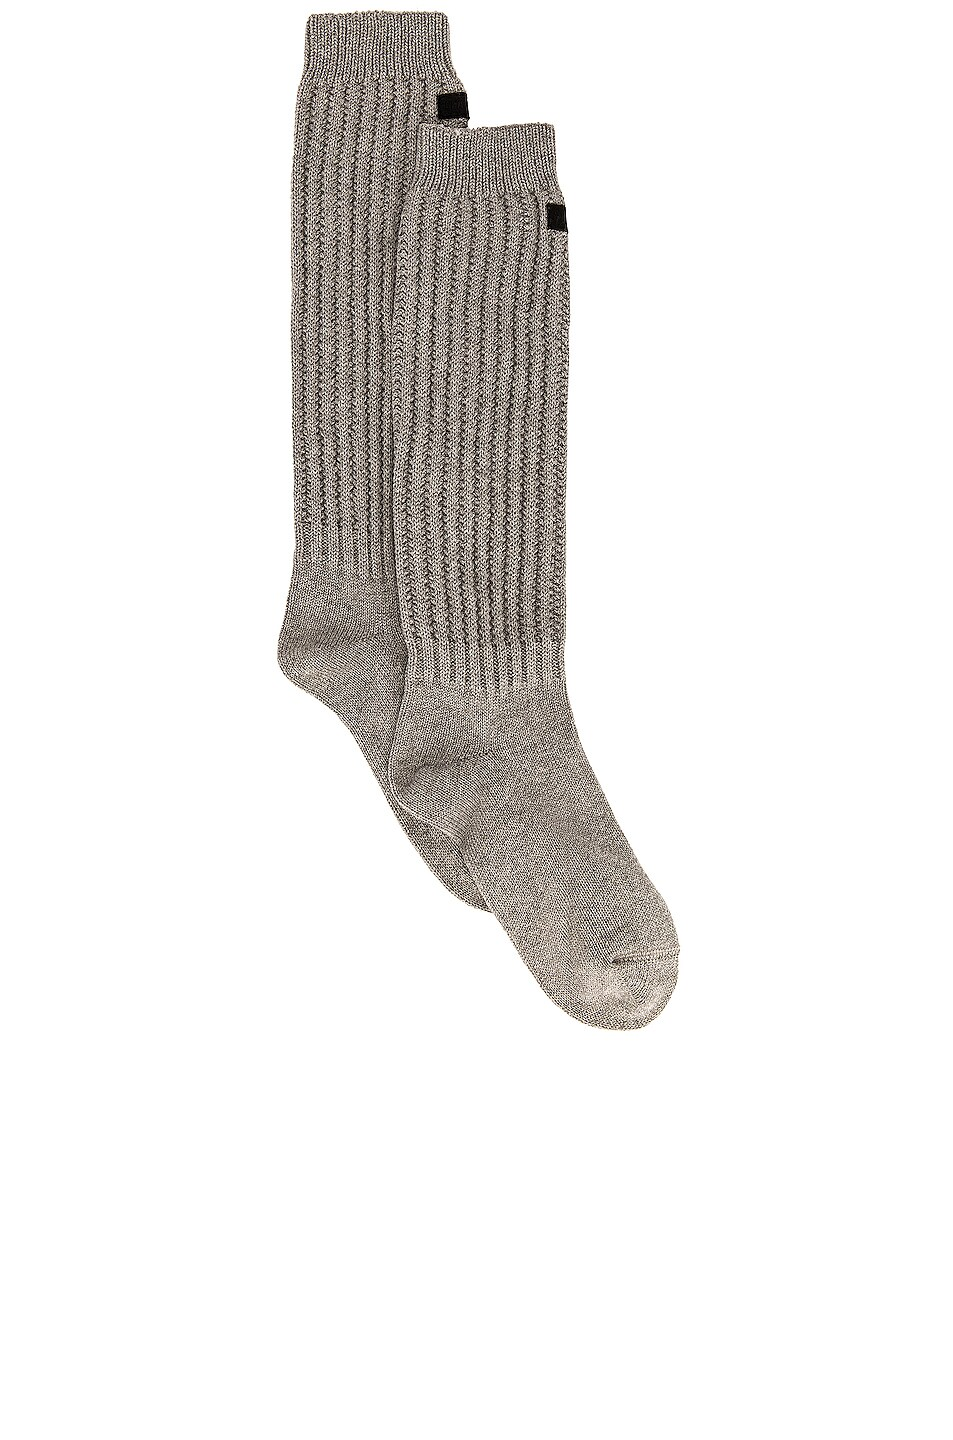 Fear of God 7th Collection Socks